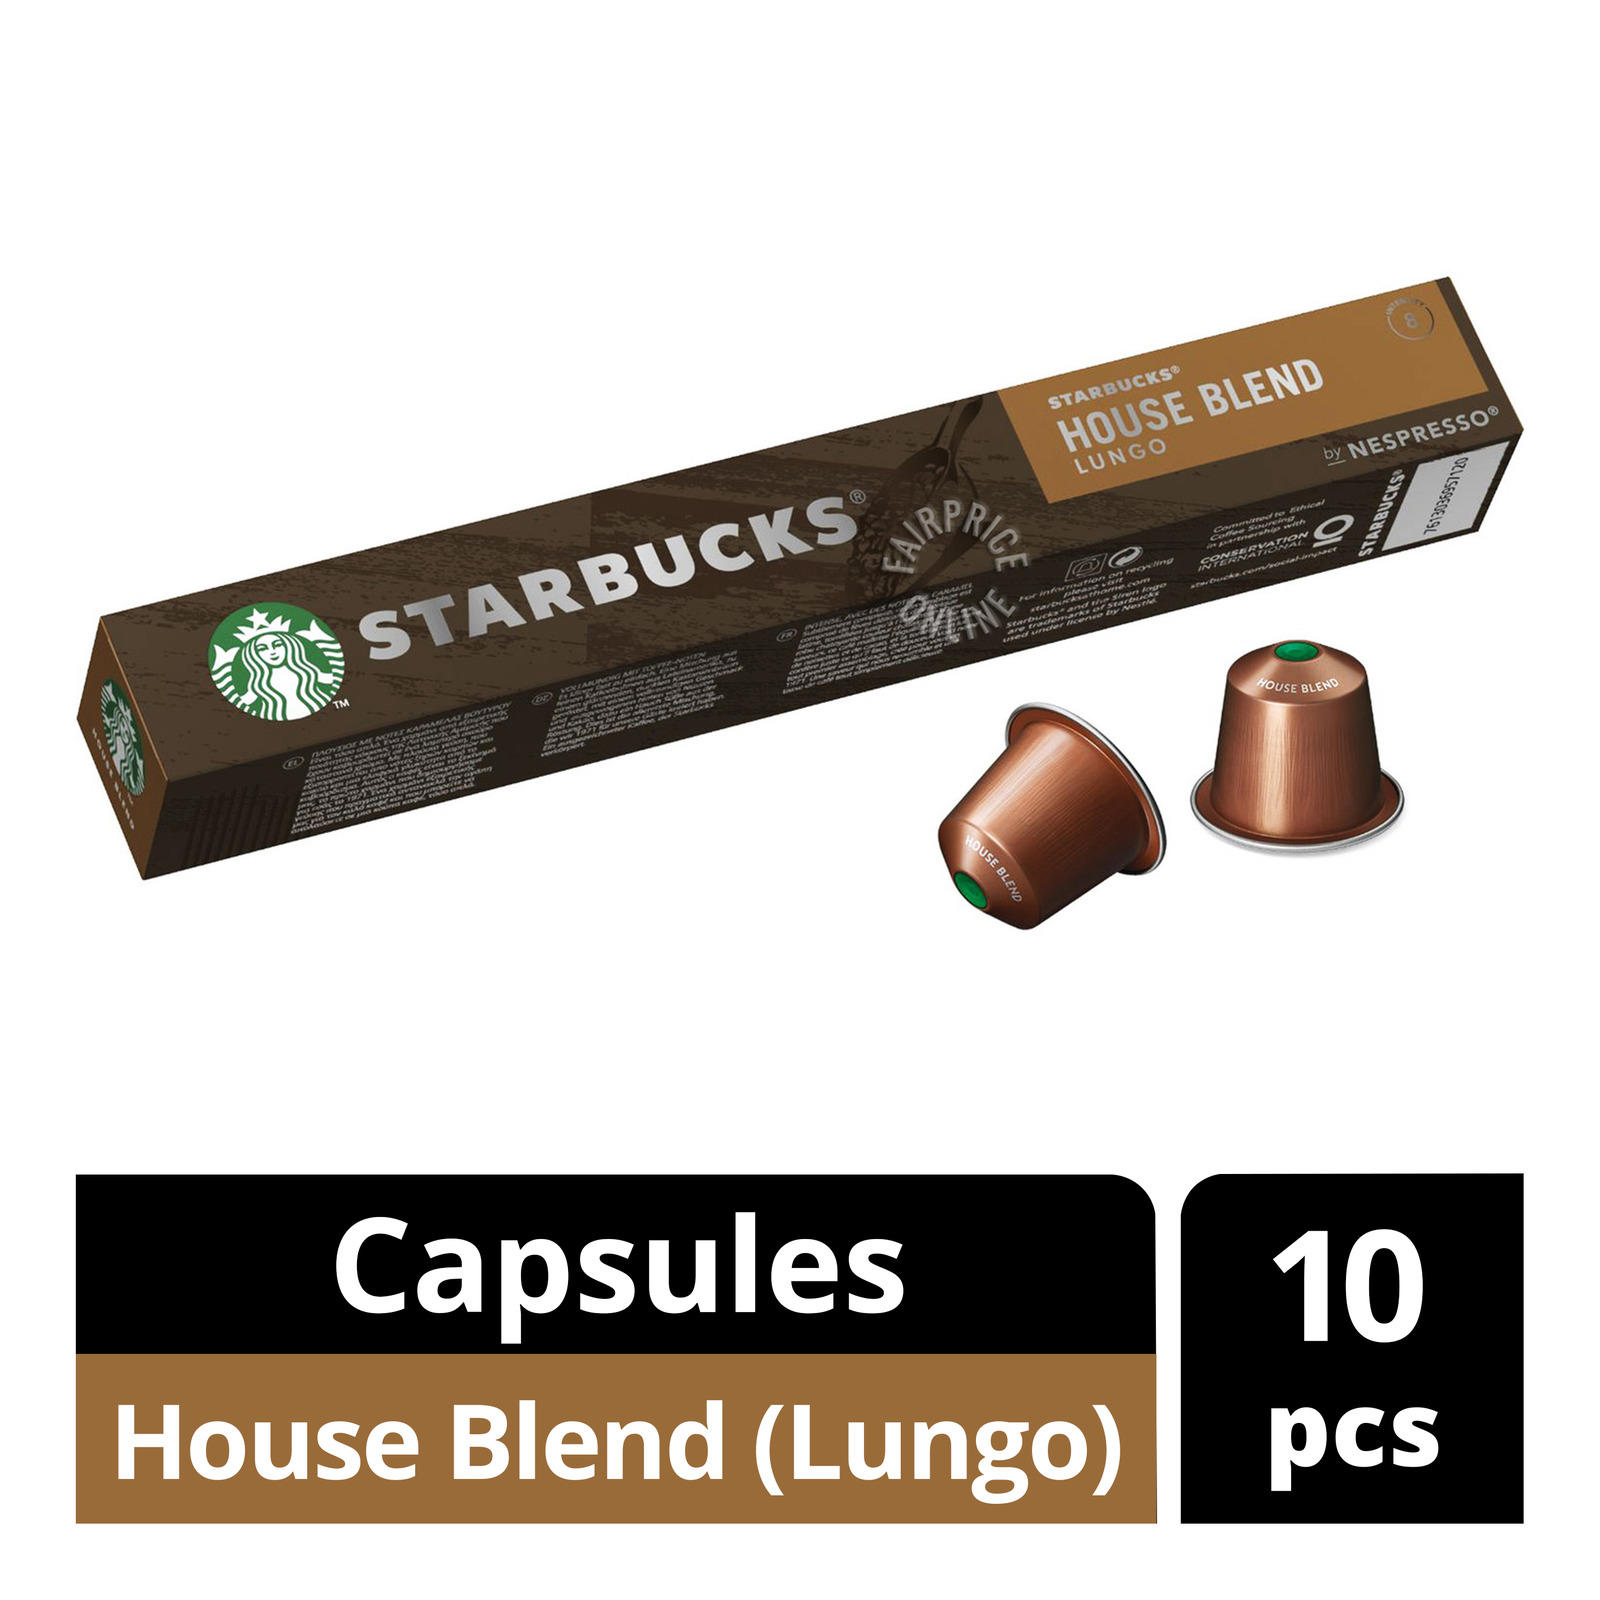 STARBUCK'S House Blend From NESPRESSO